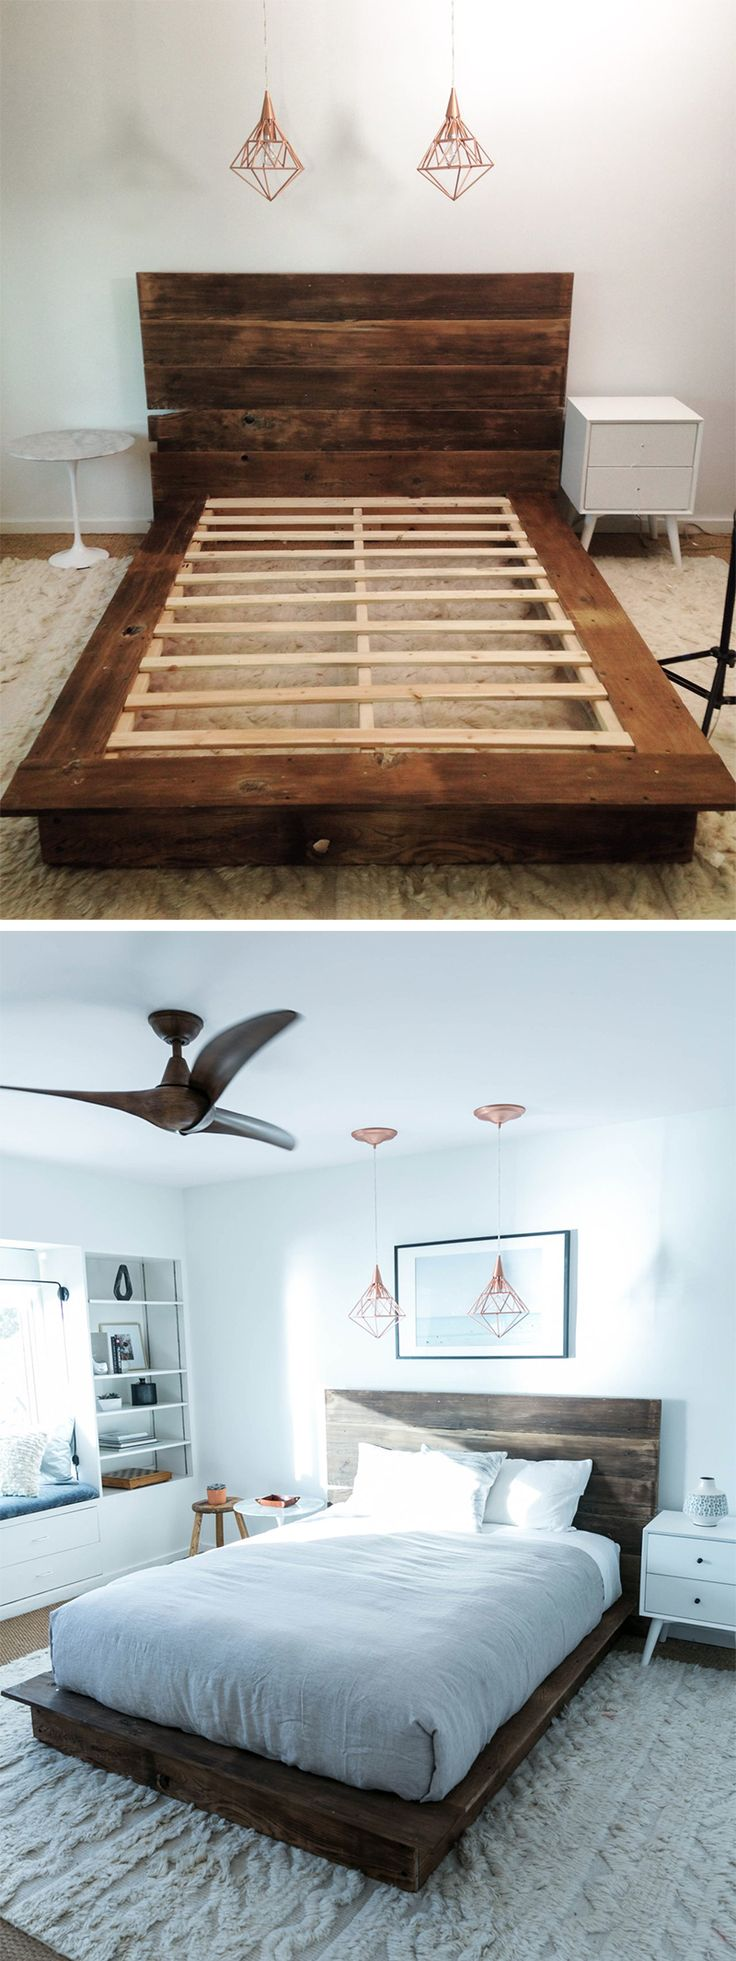 Best 25 diy bed frame ideas only on pinterest for Make your own bed frame ideas